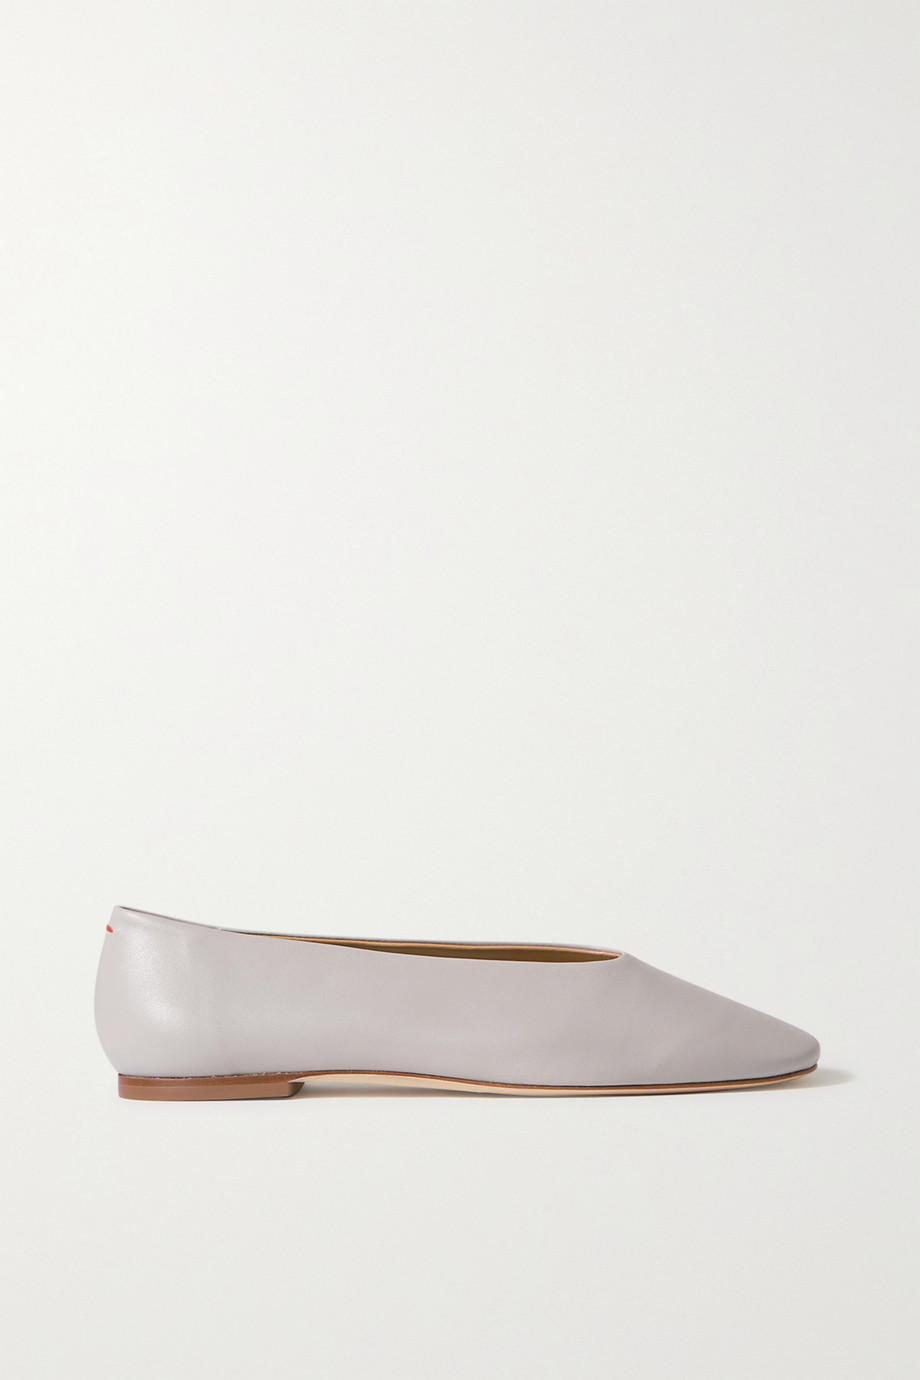 AEYDE Kirsten leather ballet flats